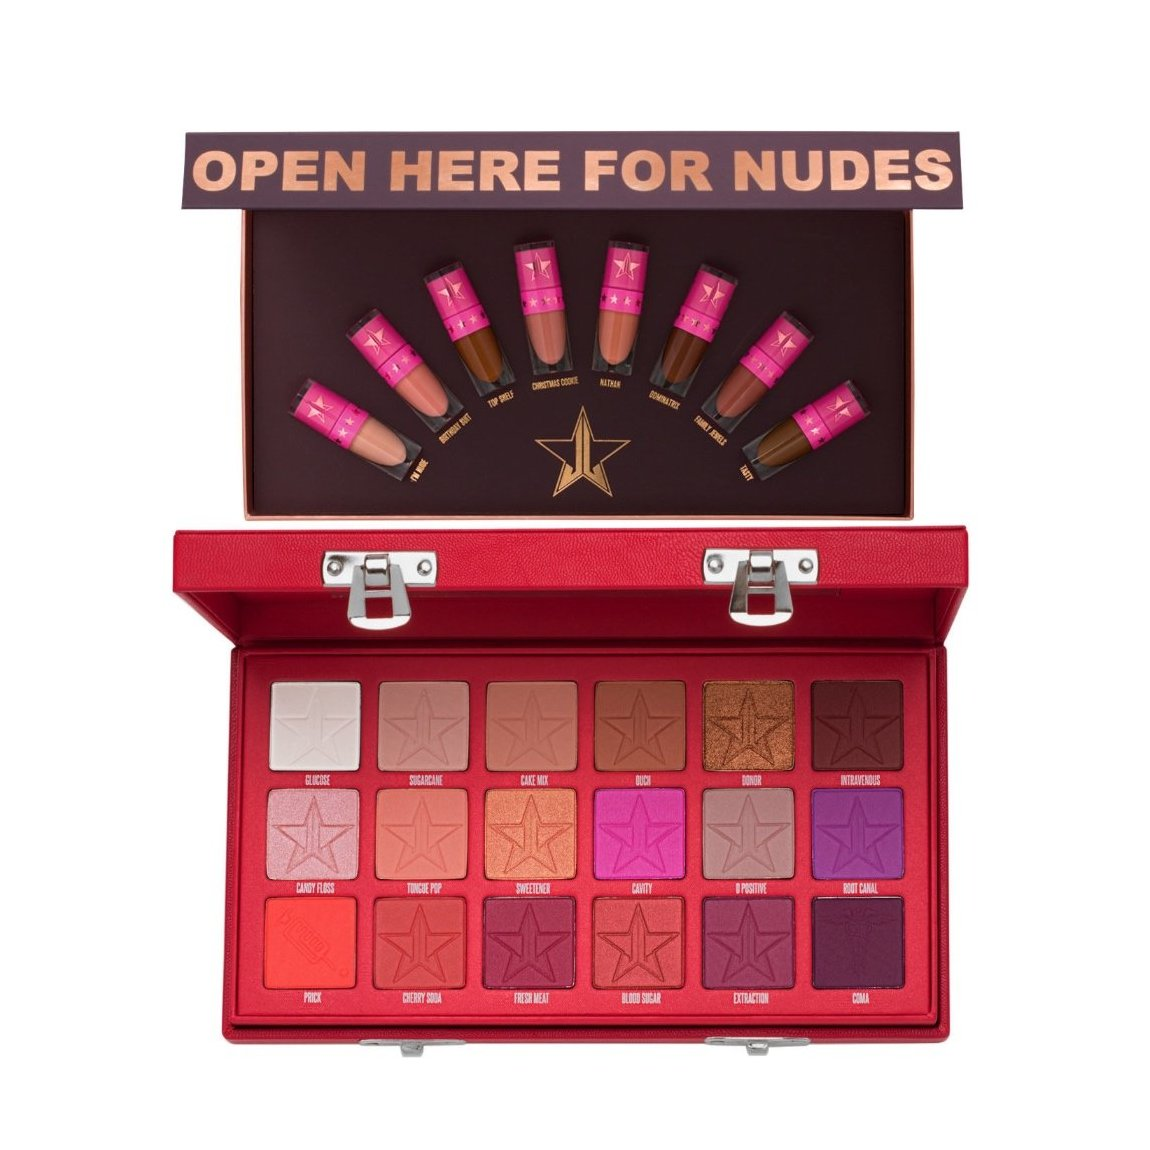 Jeffree Star Cosmetics Mini Nudes Bundle: Volume 2 & Blood Sugar Eyeshadow Palette Bundle product swatch.